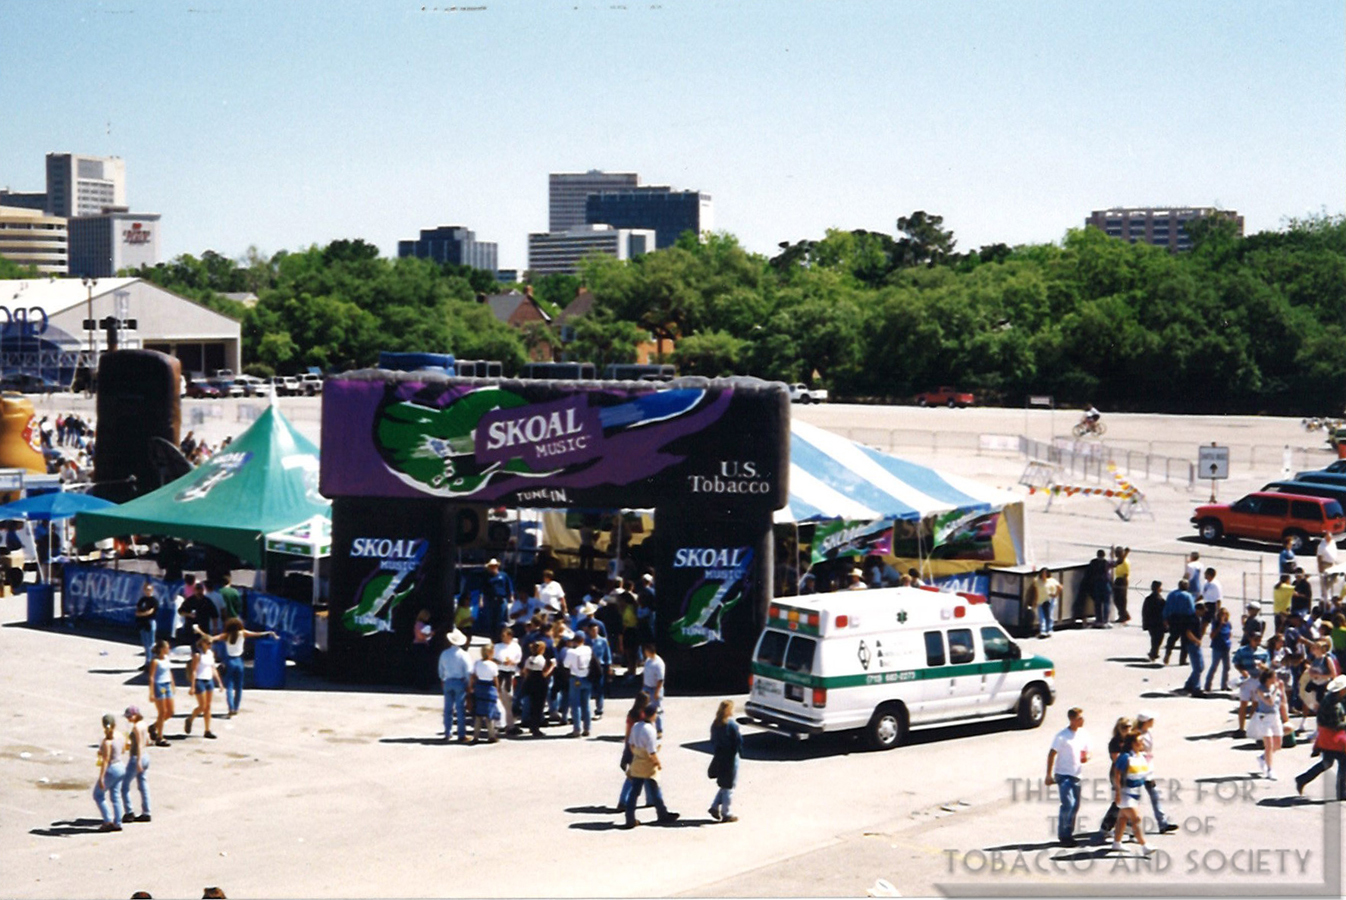 Skoal Music Stage